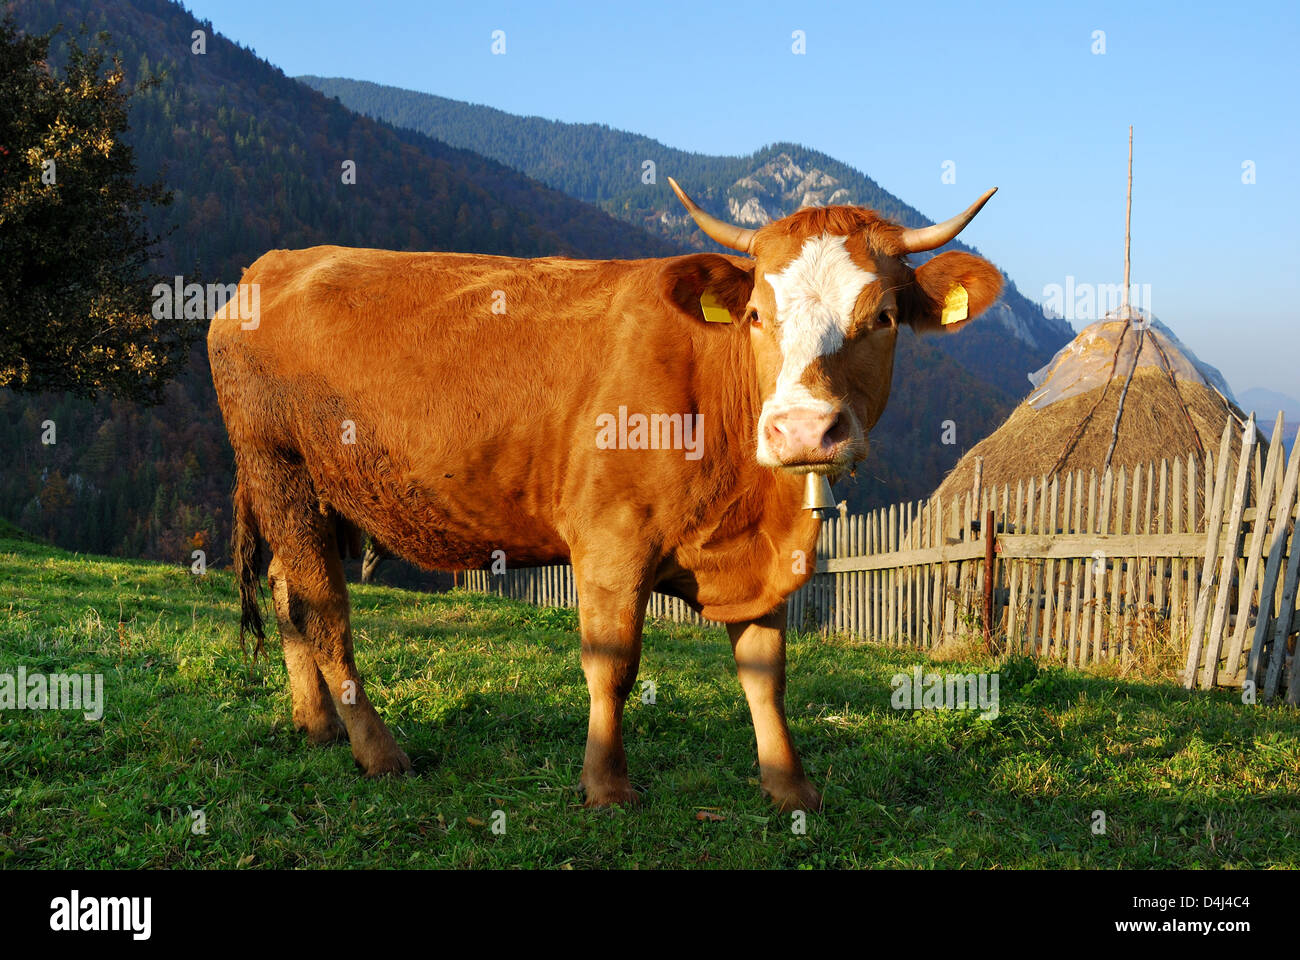 Rural landscape in Carpathian mountains with domestic cow in image. - Stock Image